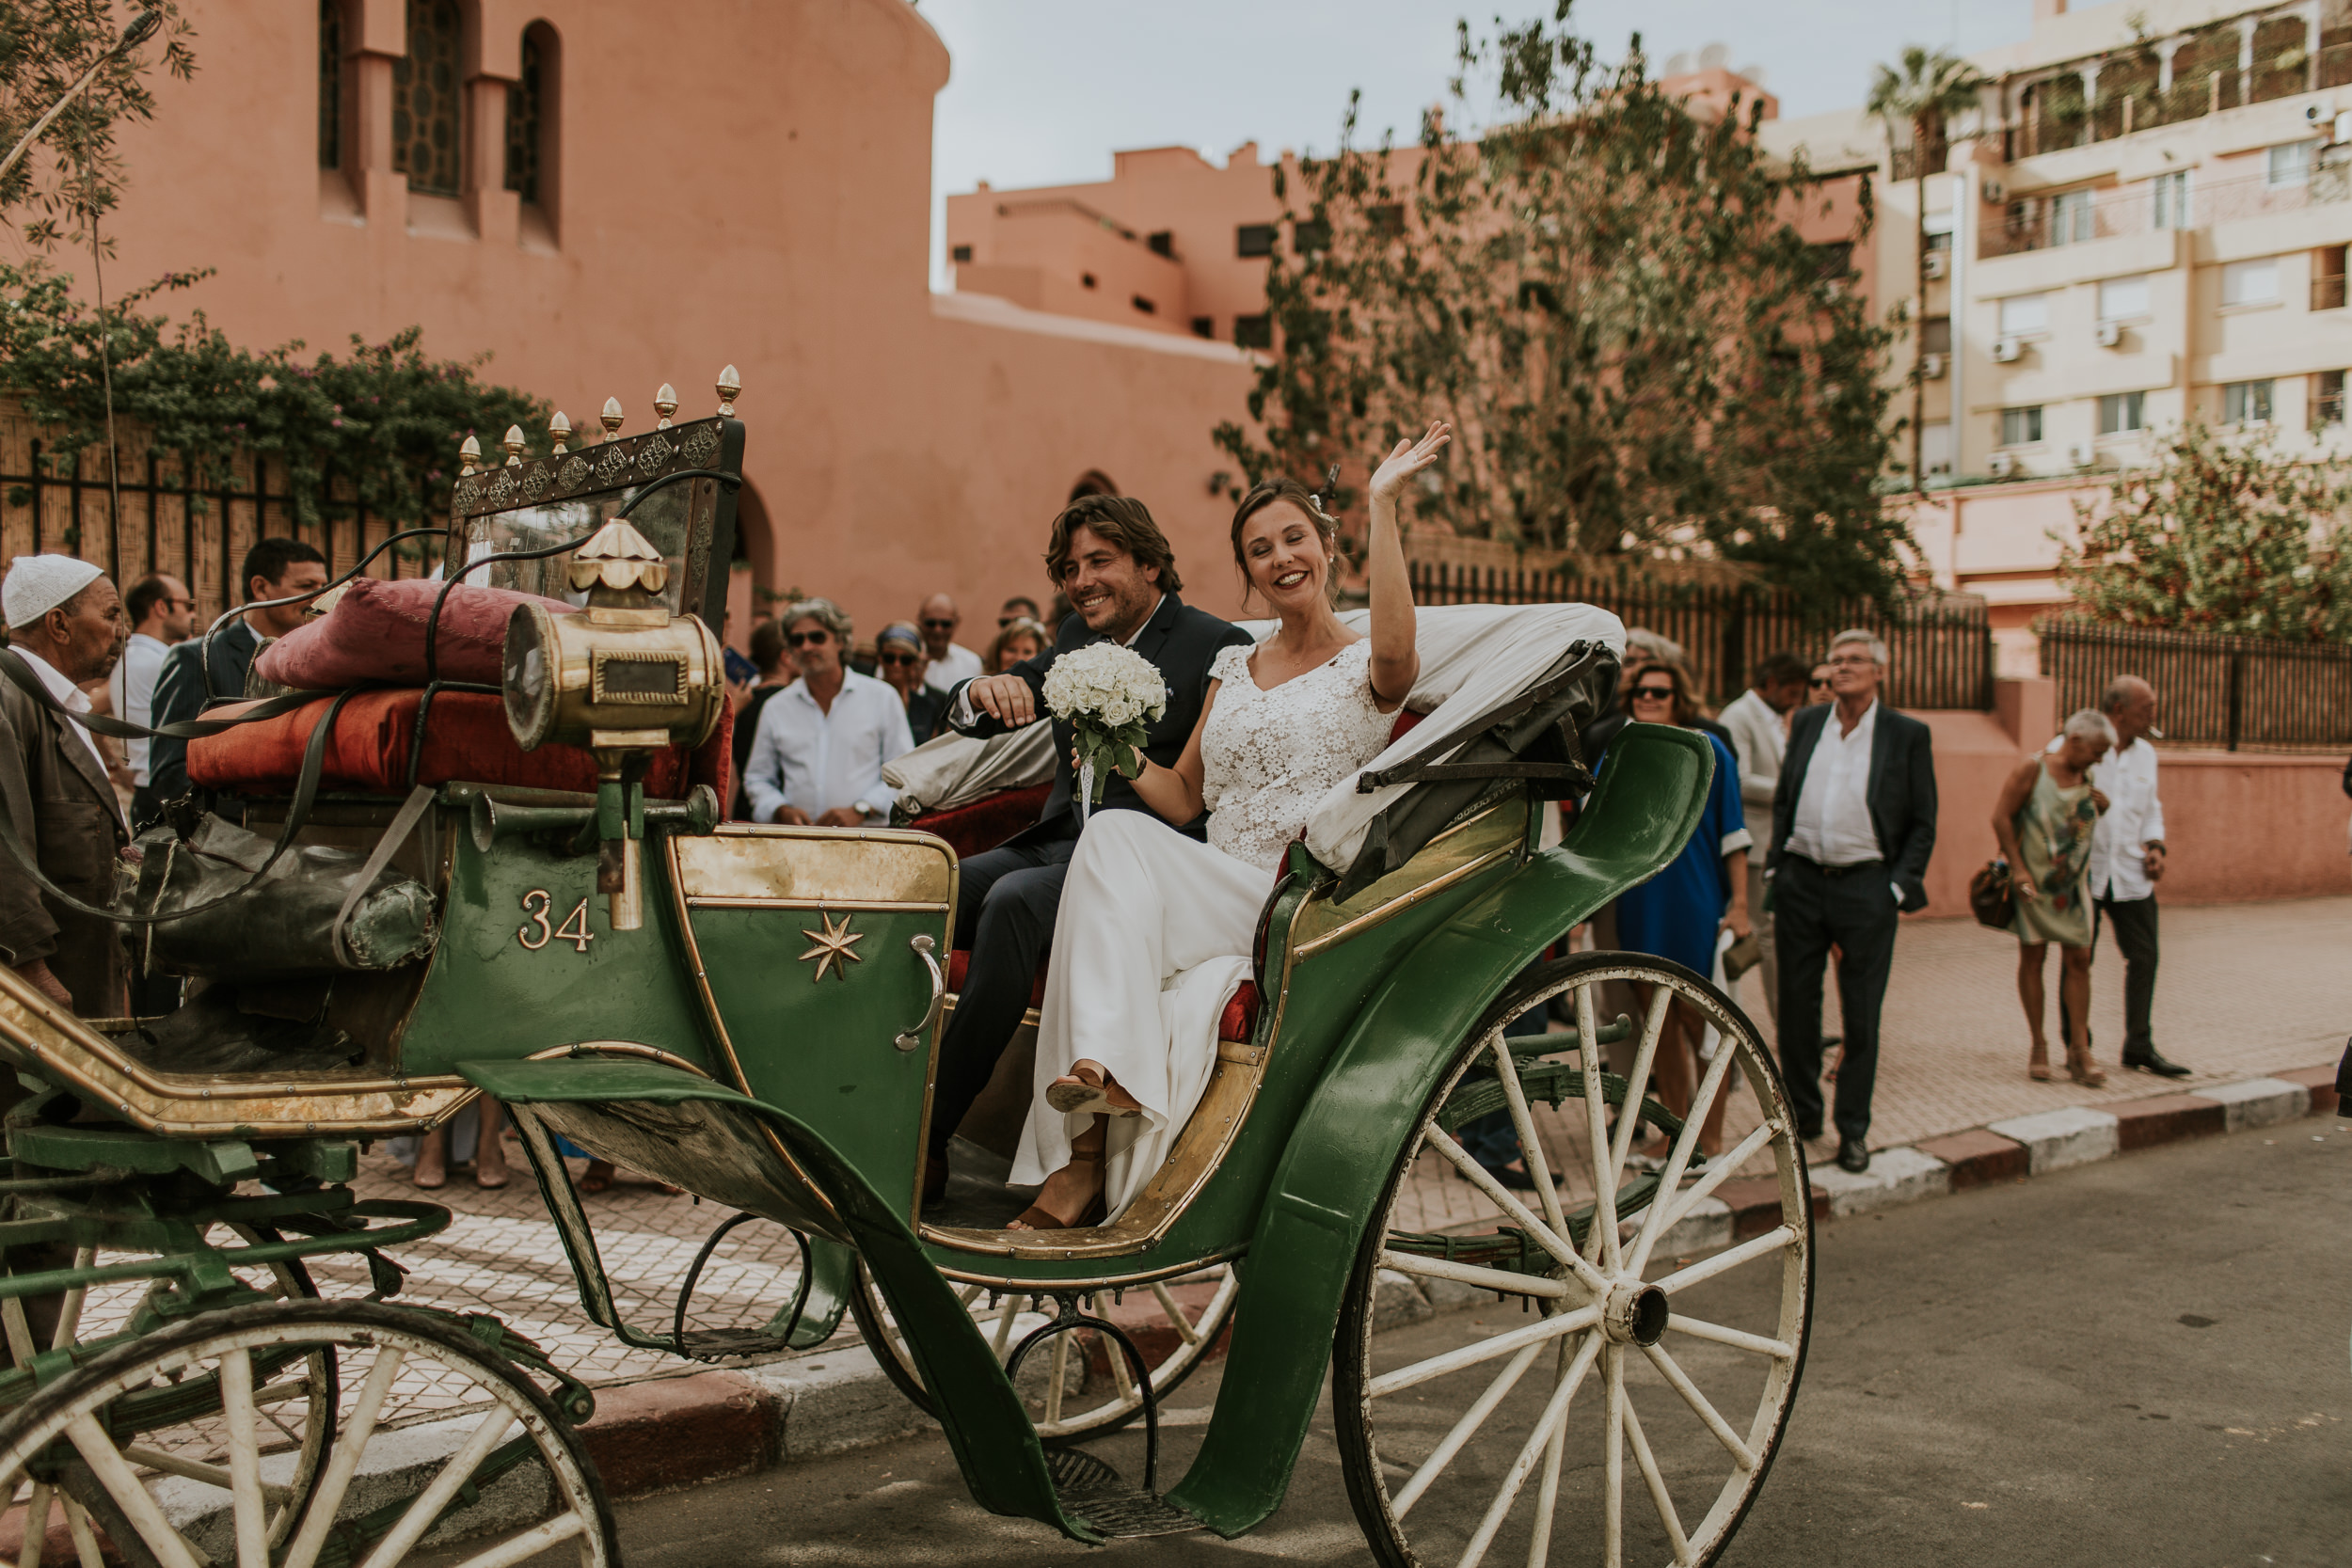 morganedimitri_davidmaire_marrakech_destinationwedding-176.jpg